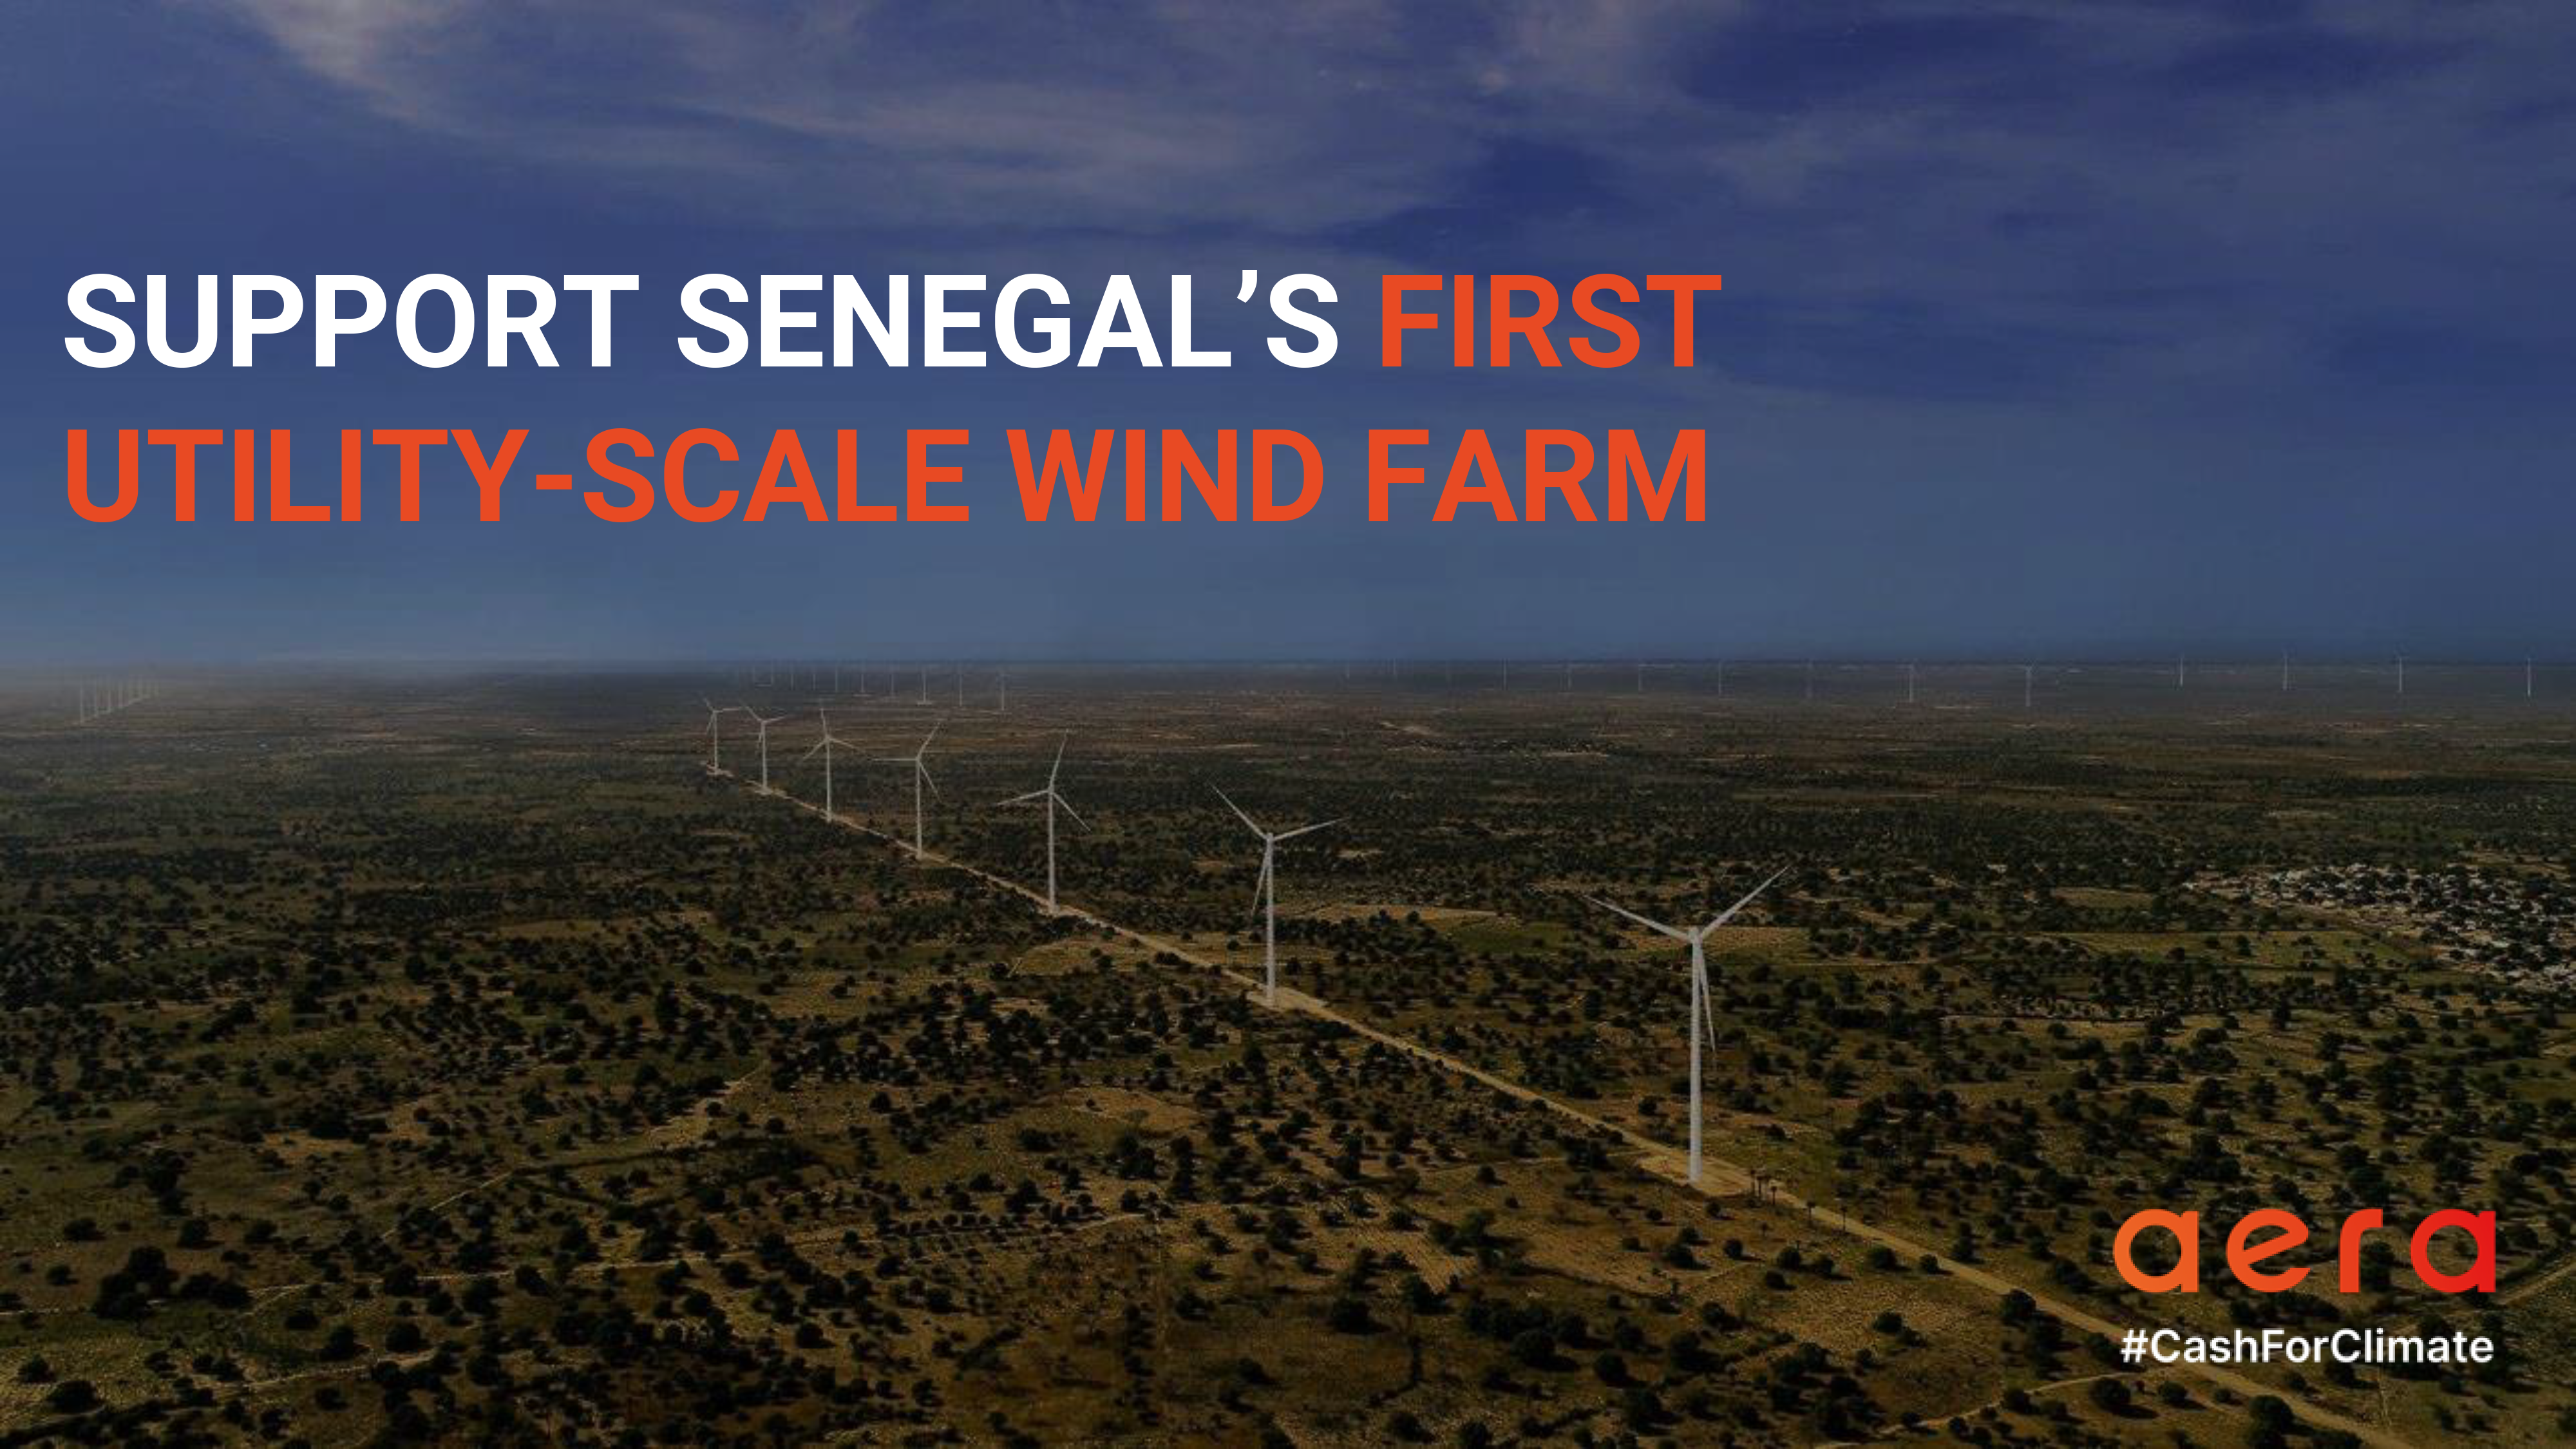 SUPPORT SENEGAL'S FIRST  UTILITY-SCALE WIND FARM